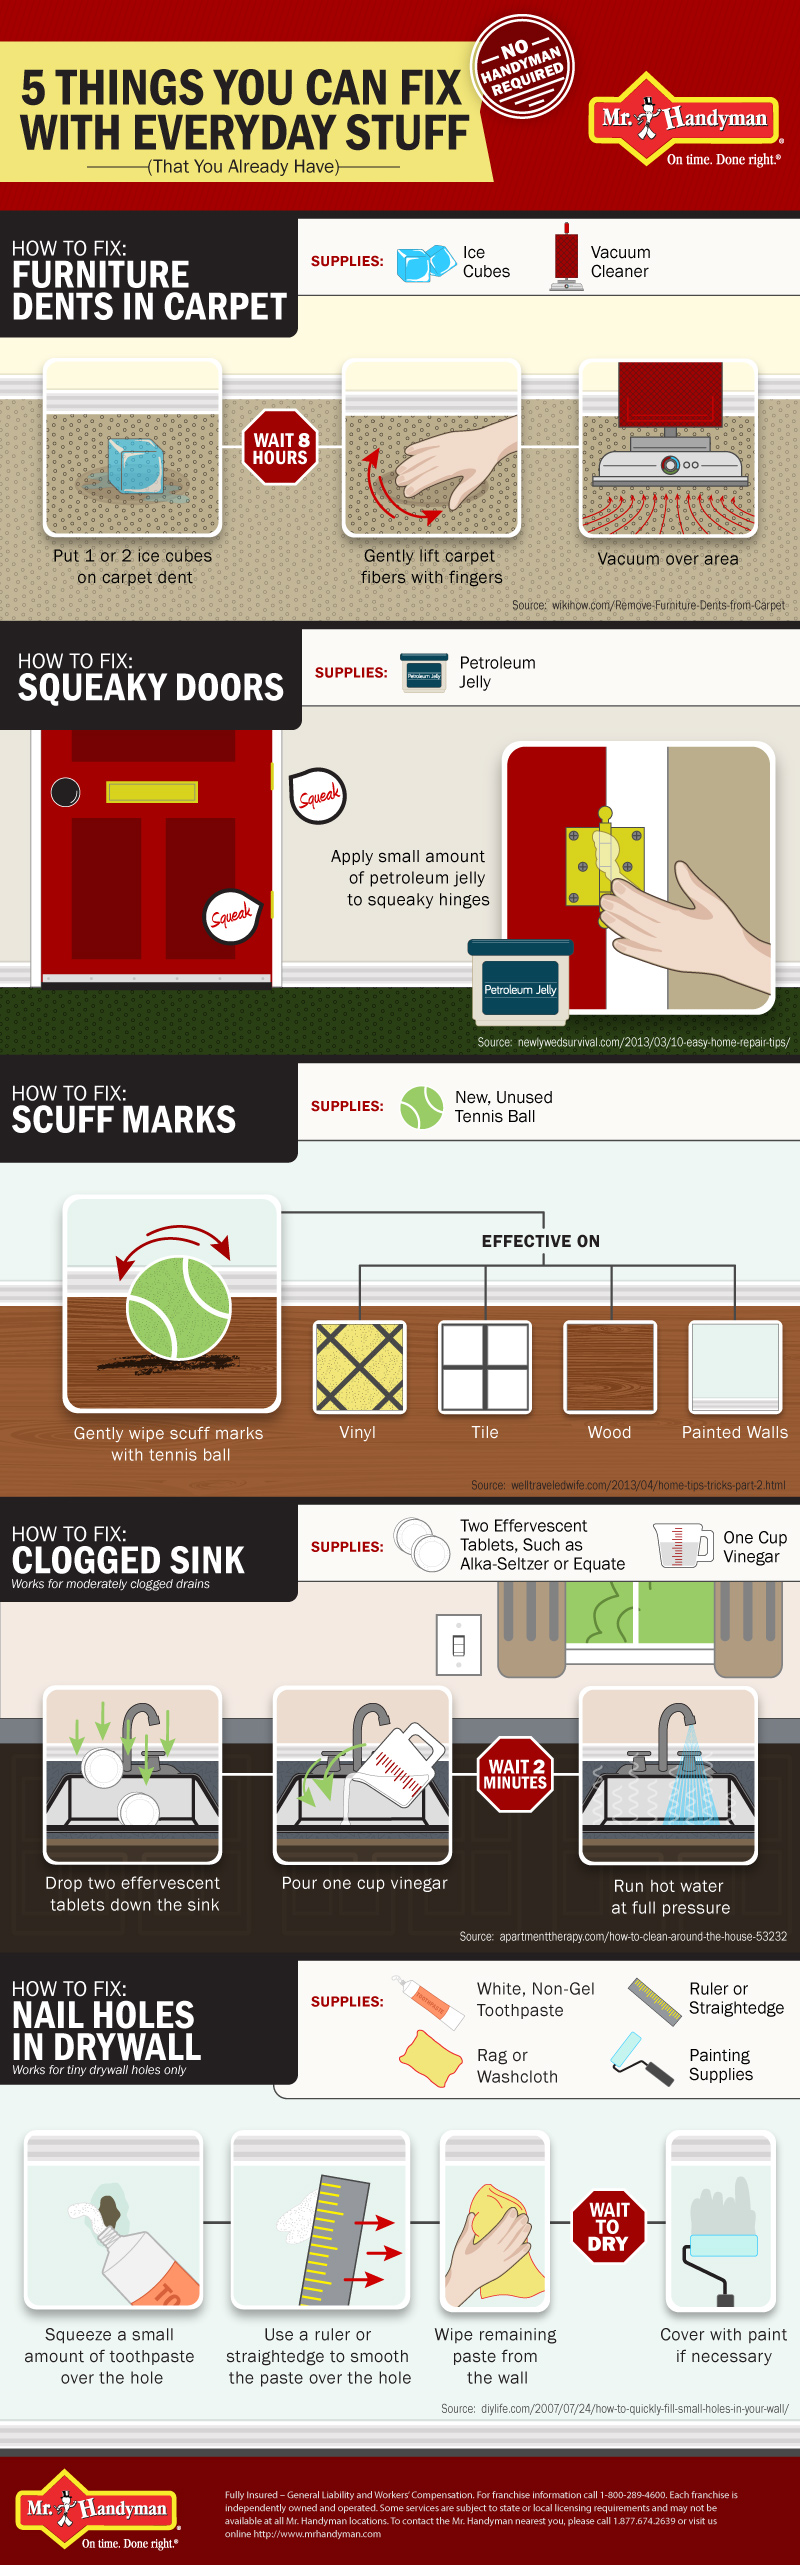 5 Things You Can Fix Without a Handyman